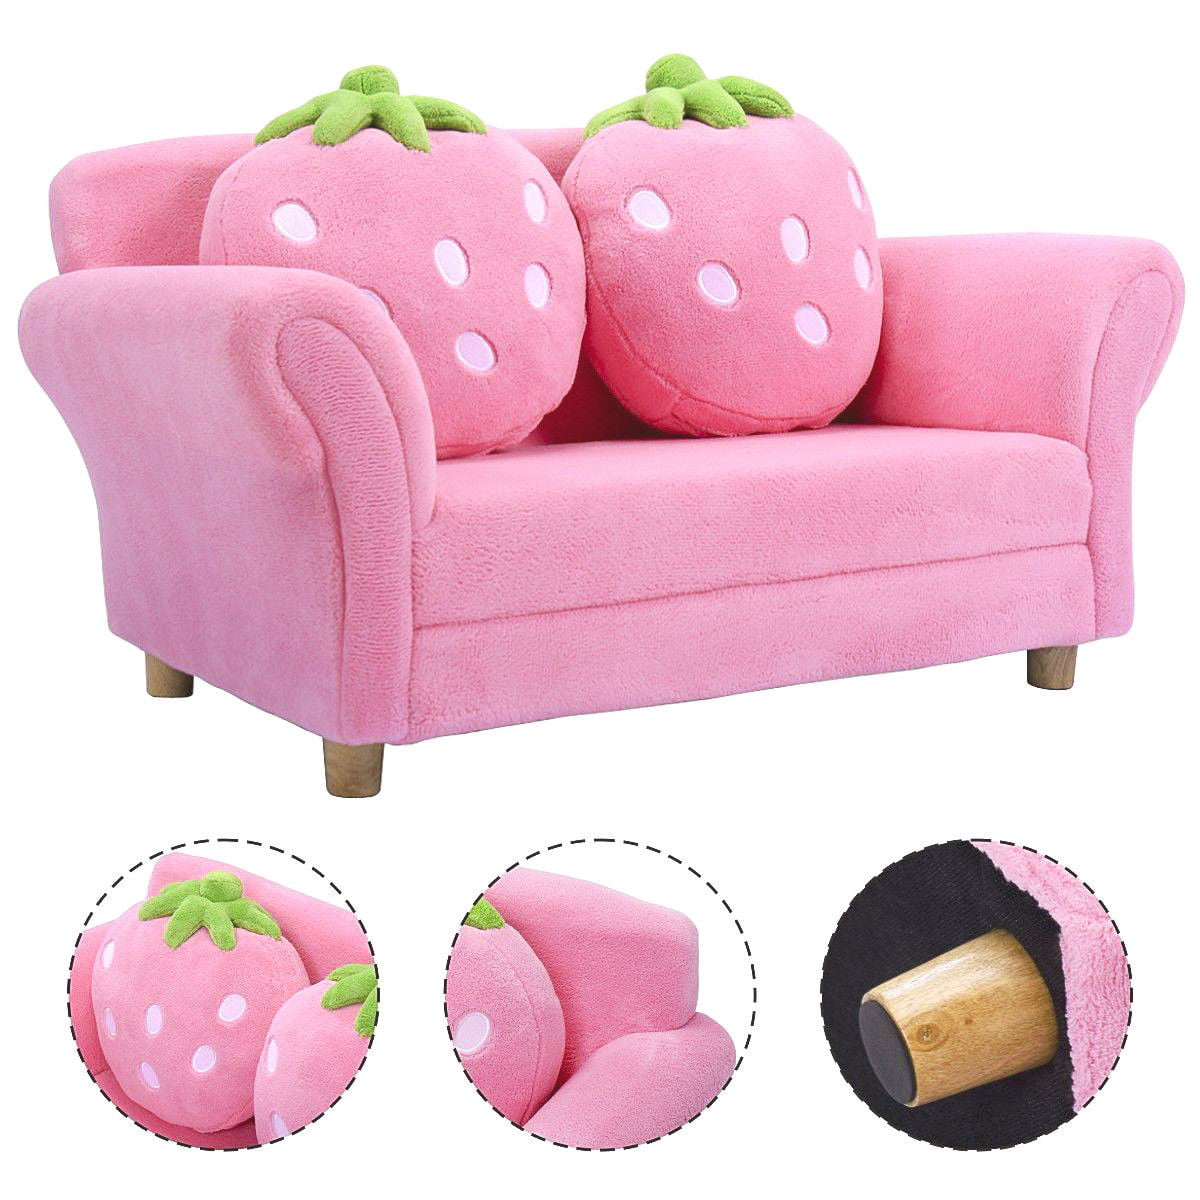 Costway Kids Sofa Strawberry Armrest Chair Lounge Couch W 2 Pillow